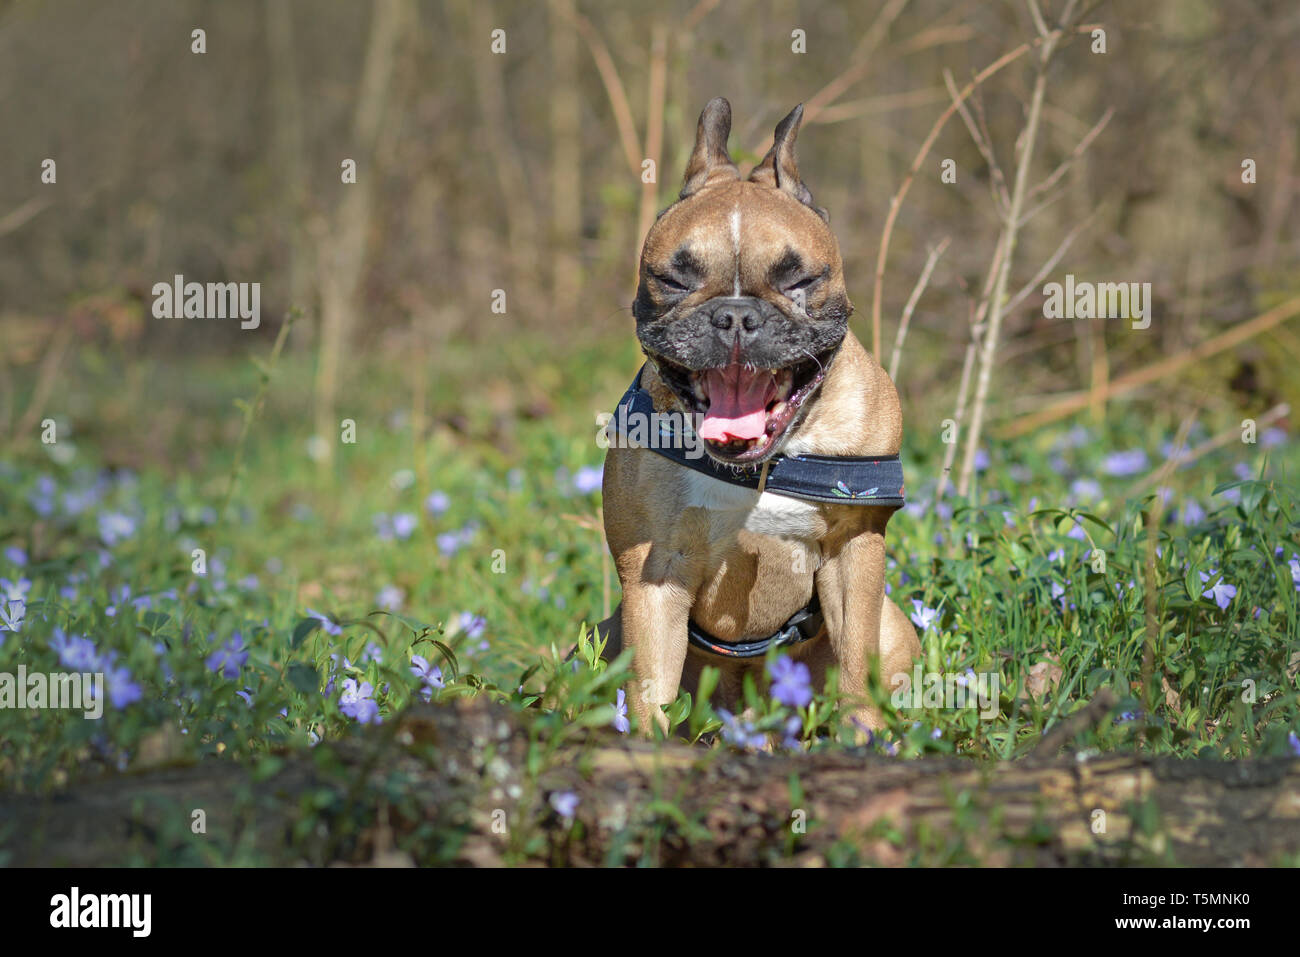 Funny yawning brown French Bulldog dog with mouth wide open sitting in forest among spring flowers - Stock Image